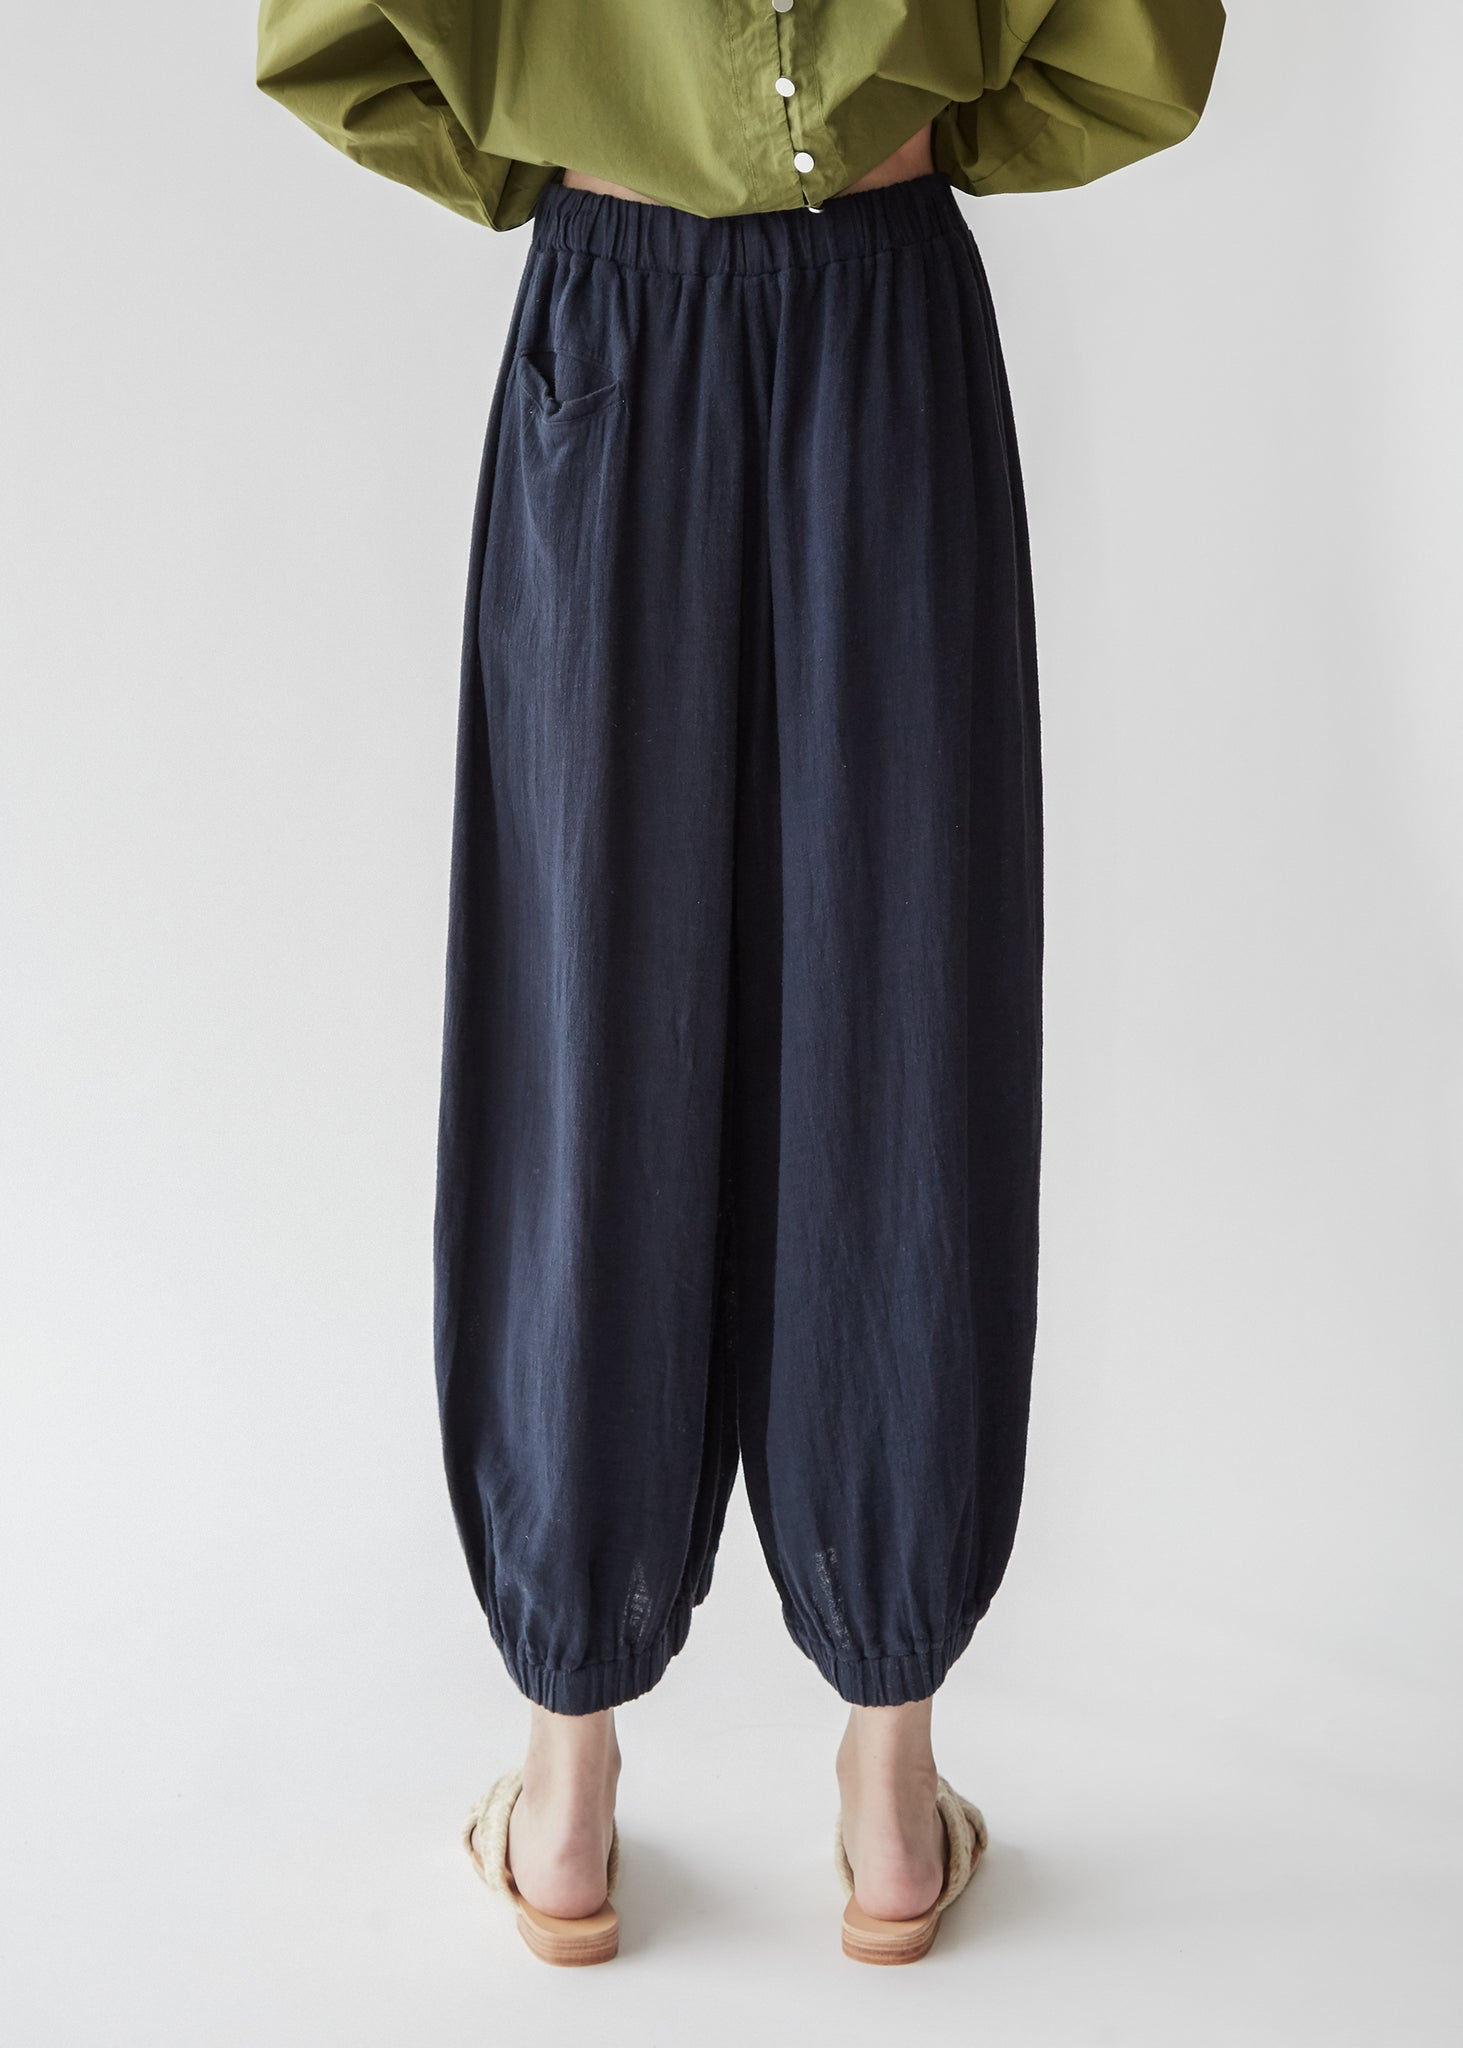 Bulb Pants in Dark Navy - SOLD OUT